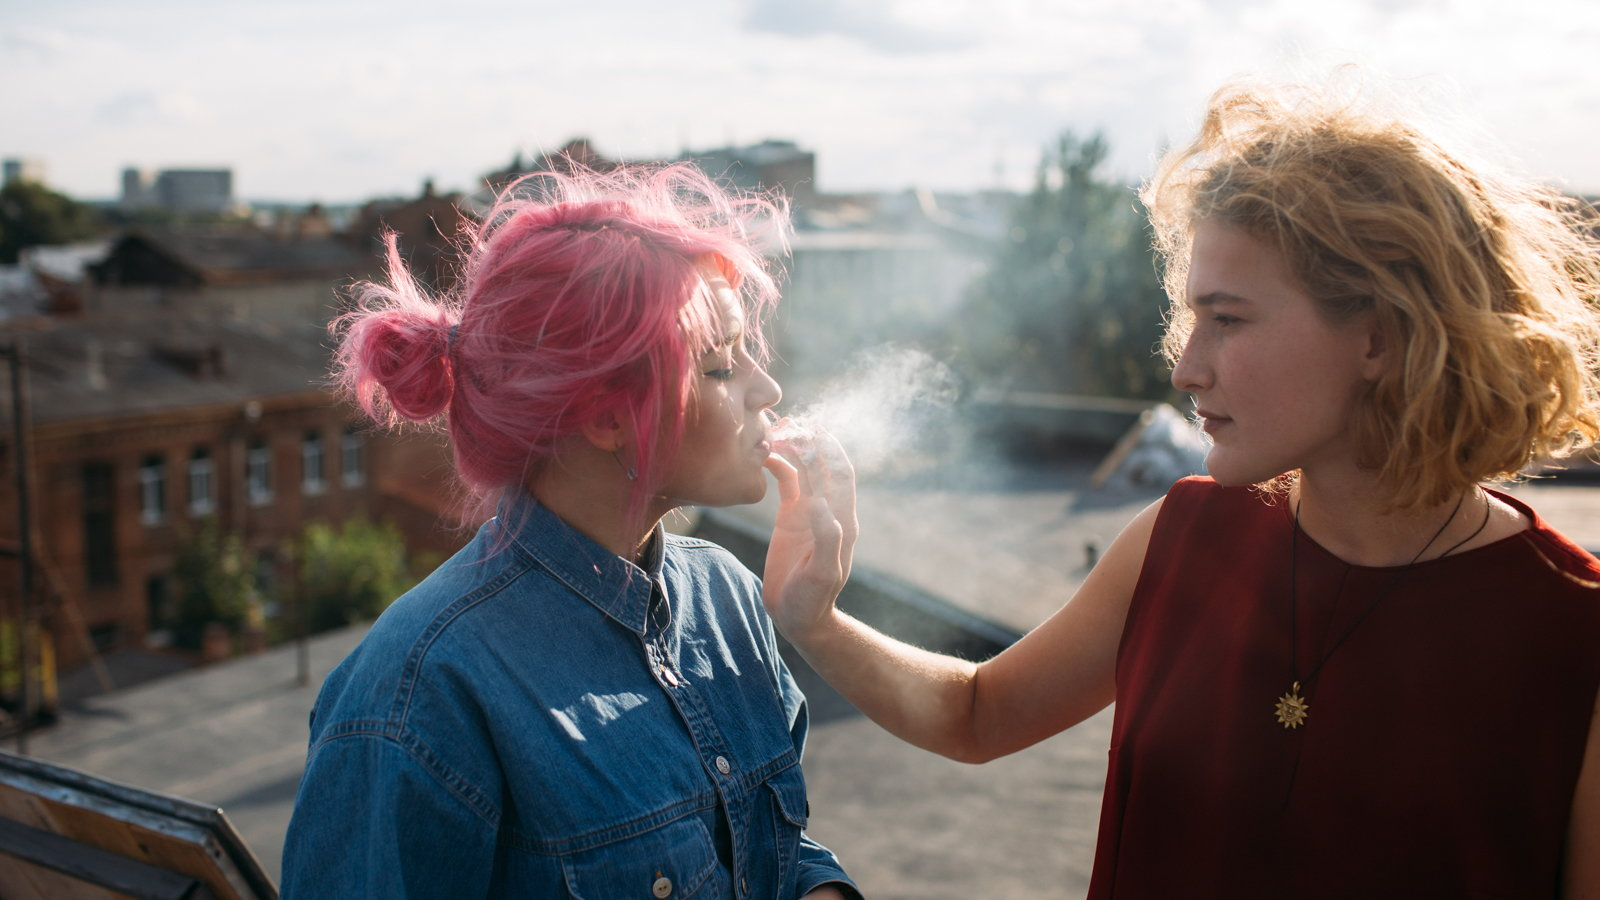 teen smoking a cigarette with a friend